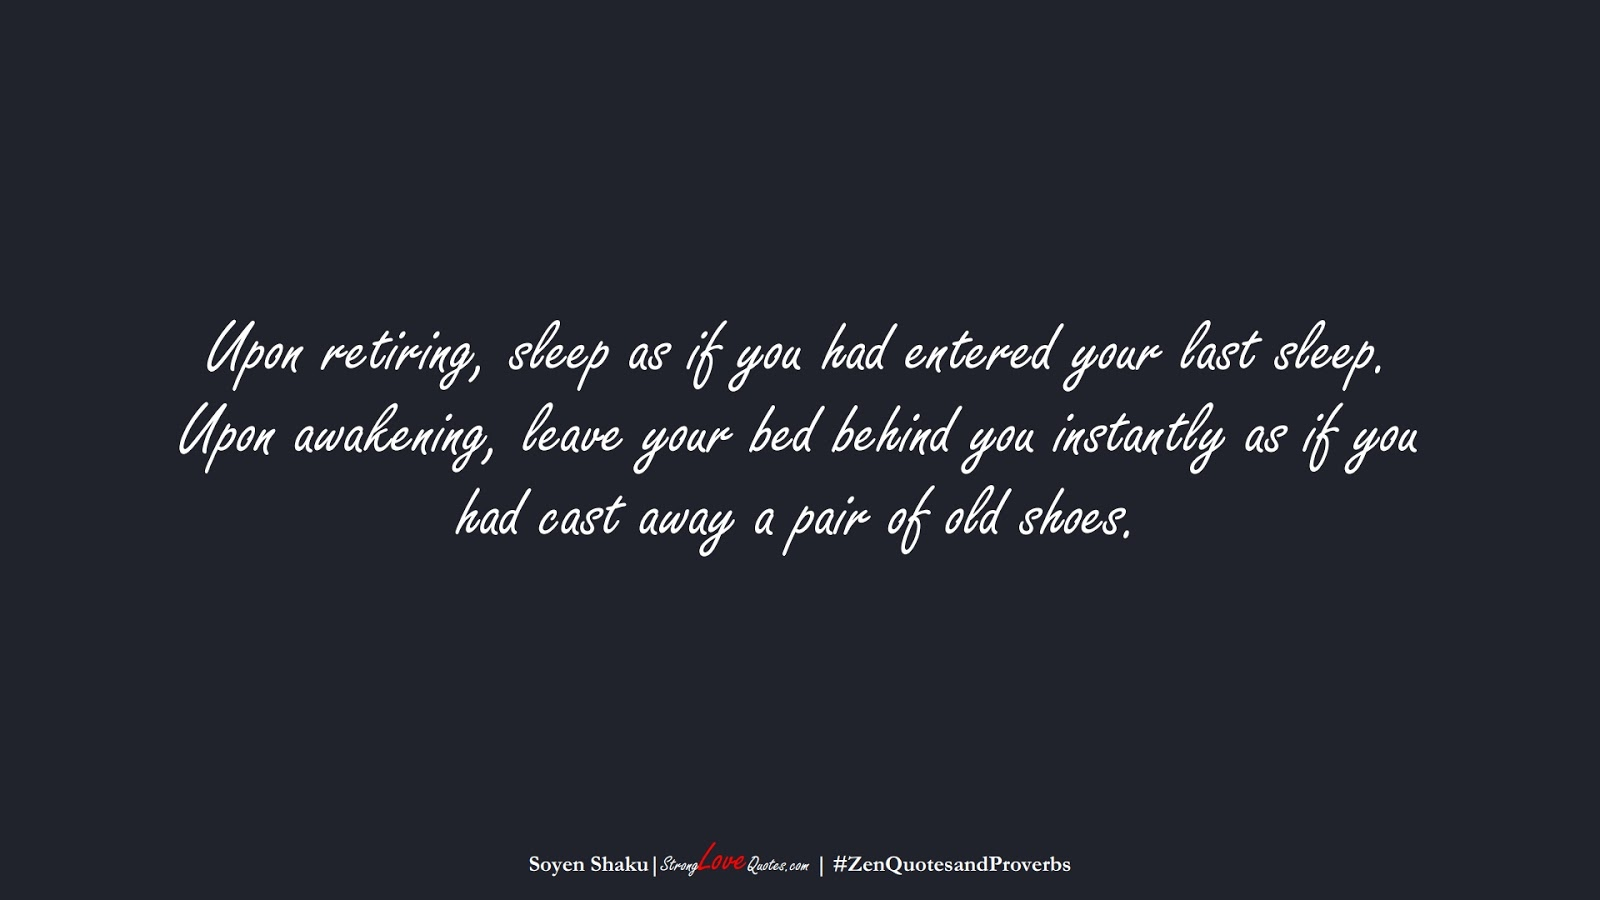 Upon retiring, sleep as if you had entered your last sleep. Upon awakening, leave your bed behind you instantly as if you had cast away a pair of old shoes. (Soyen Shaku);  #ZenQuotesandProverbs